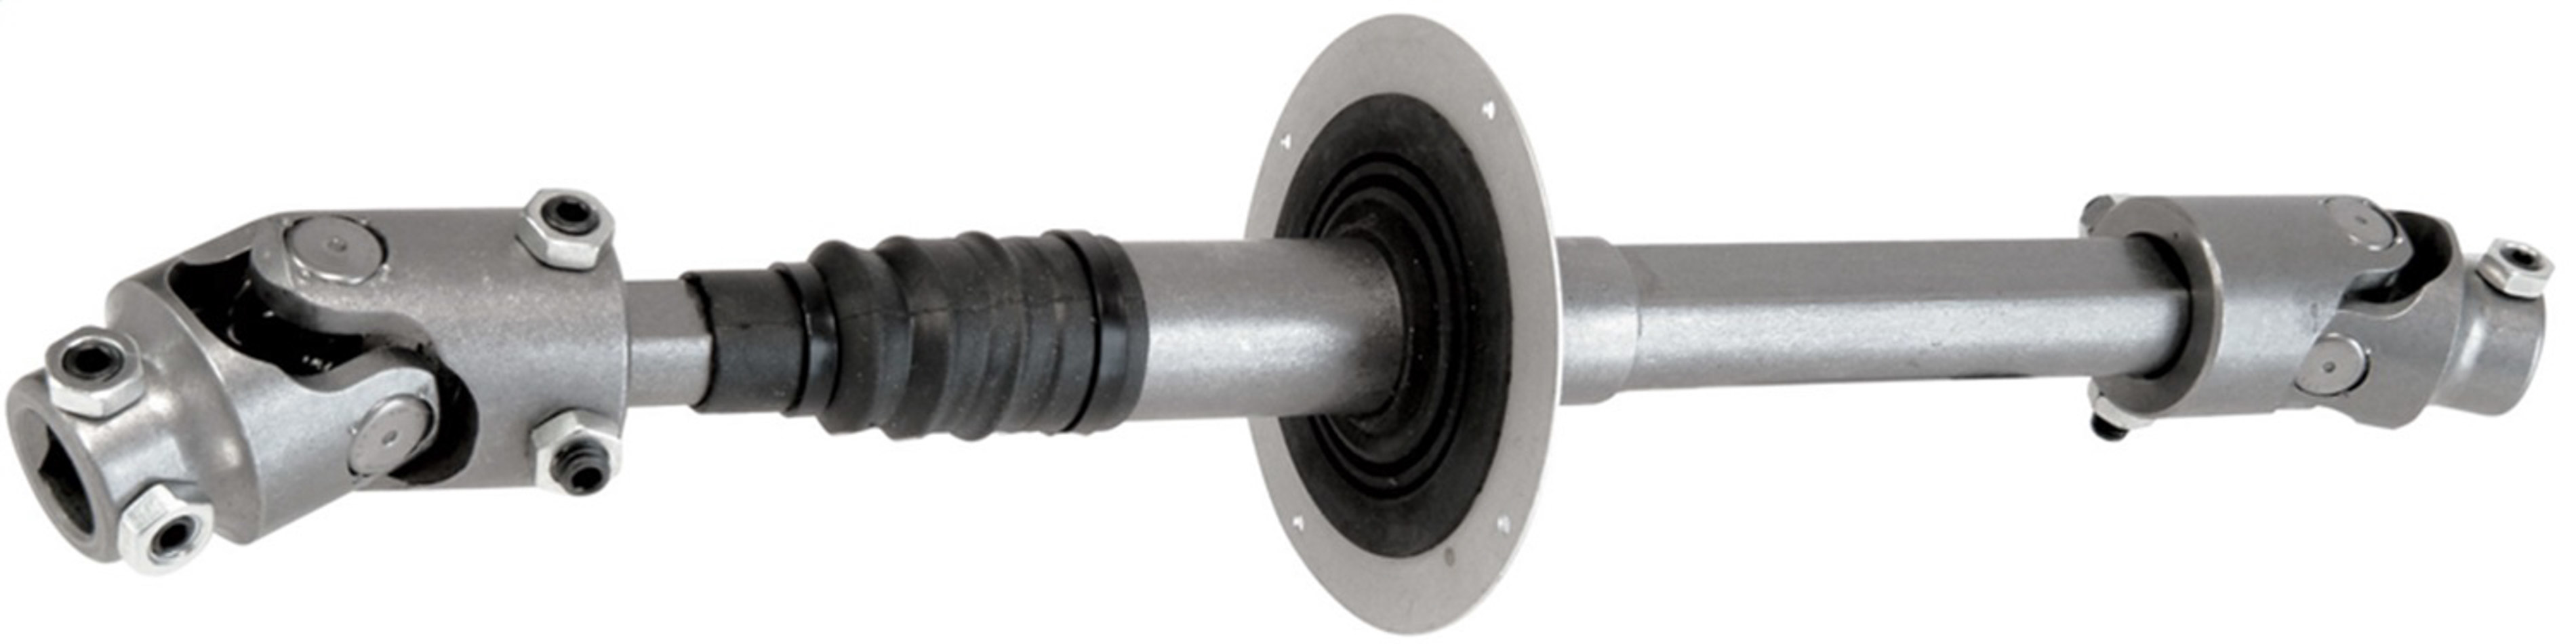 Borgeson 000873 Steering Shaft, Upper, Steel, Natural, Jeep TJ 2001-06, Each